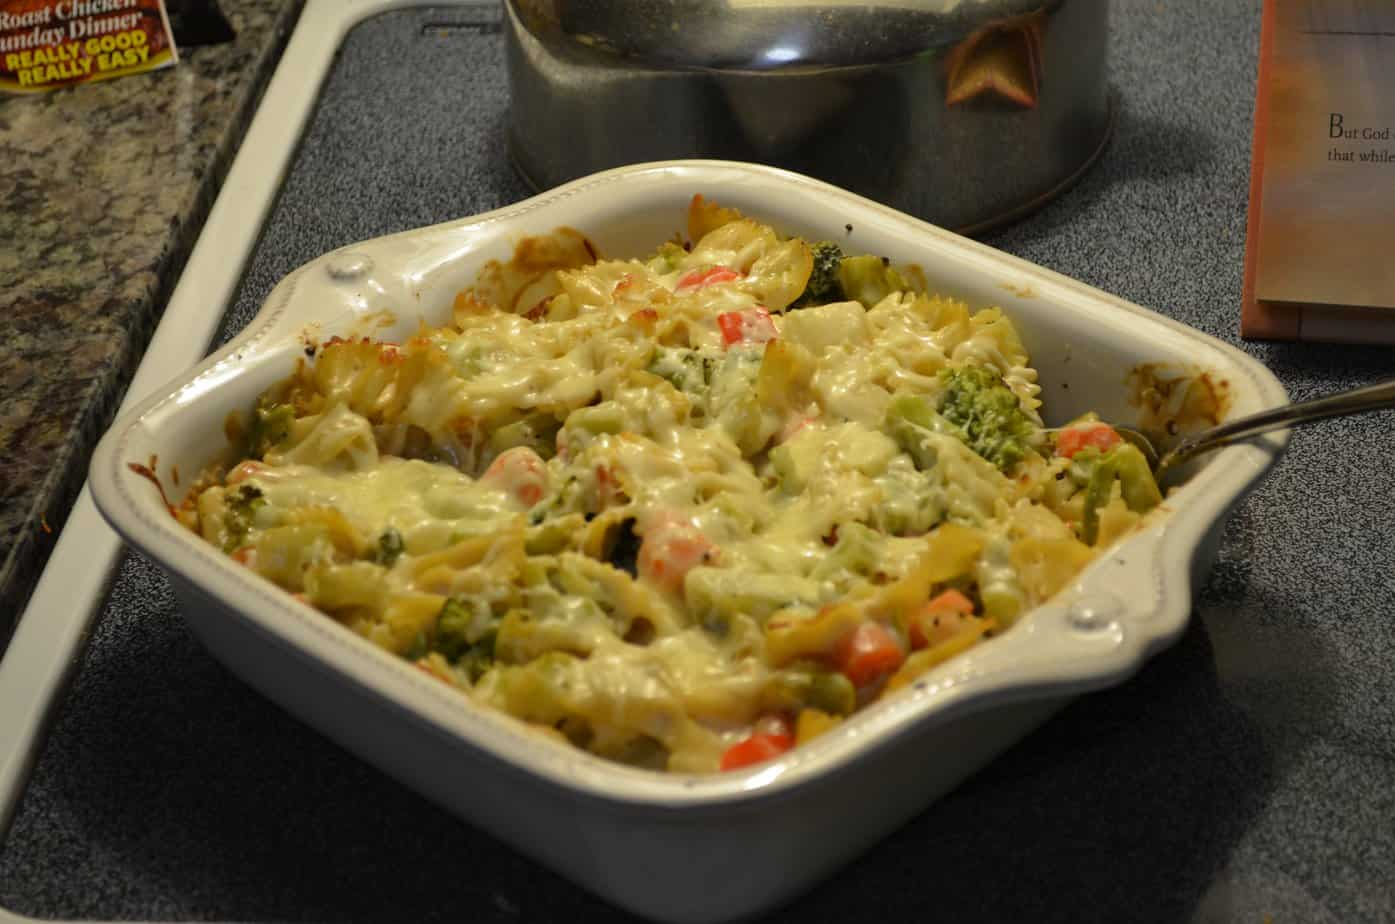 Bowtie and Vegetable Alfredo Bake 5